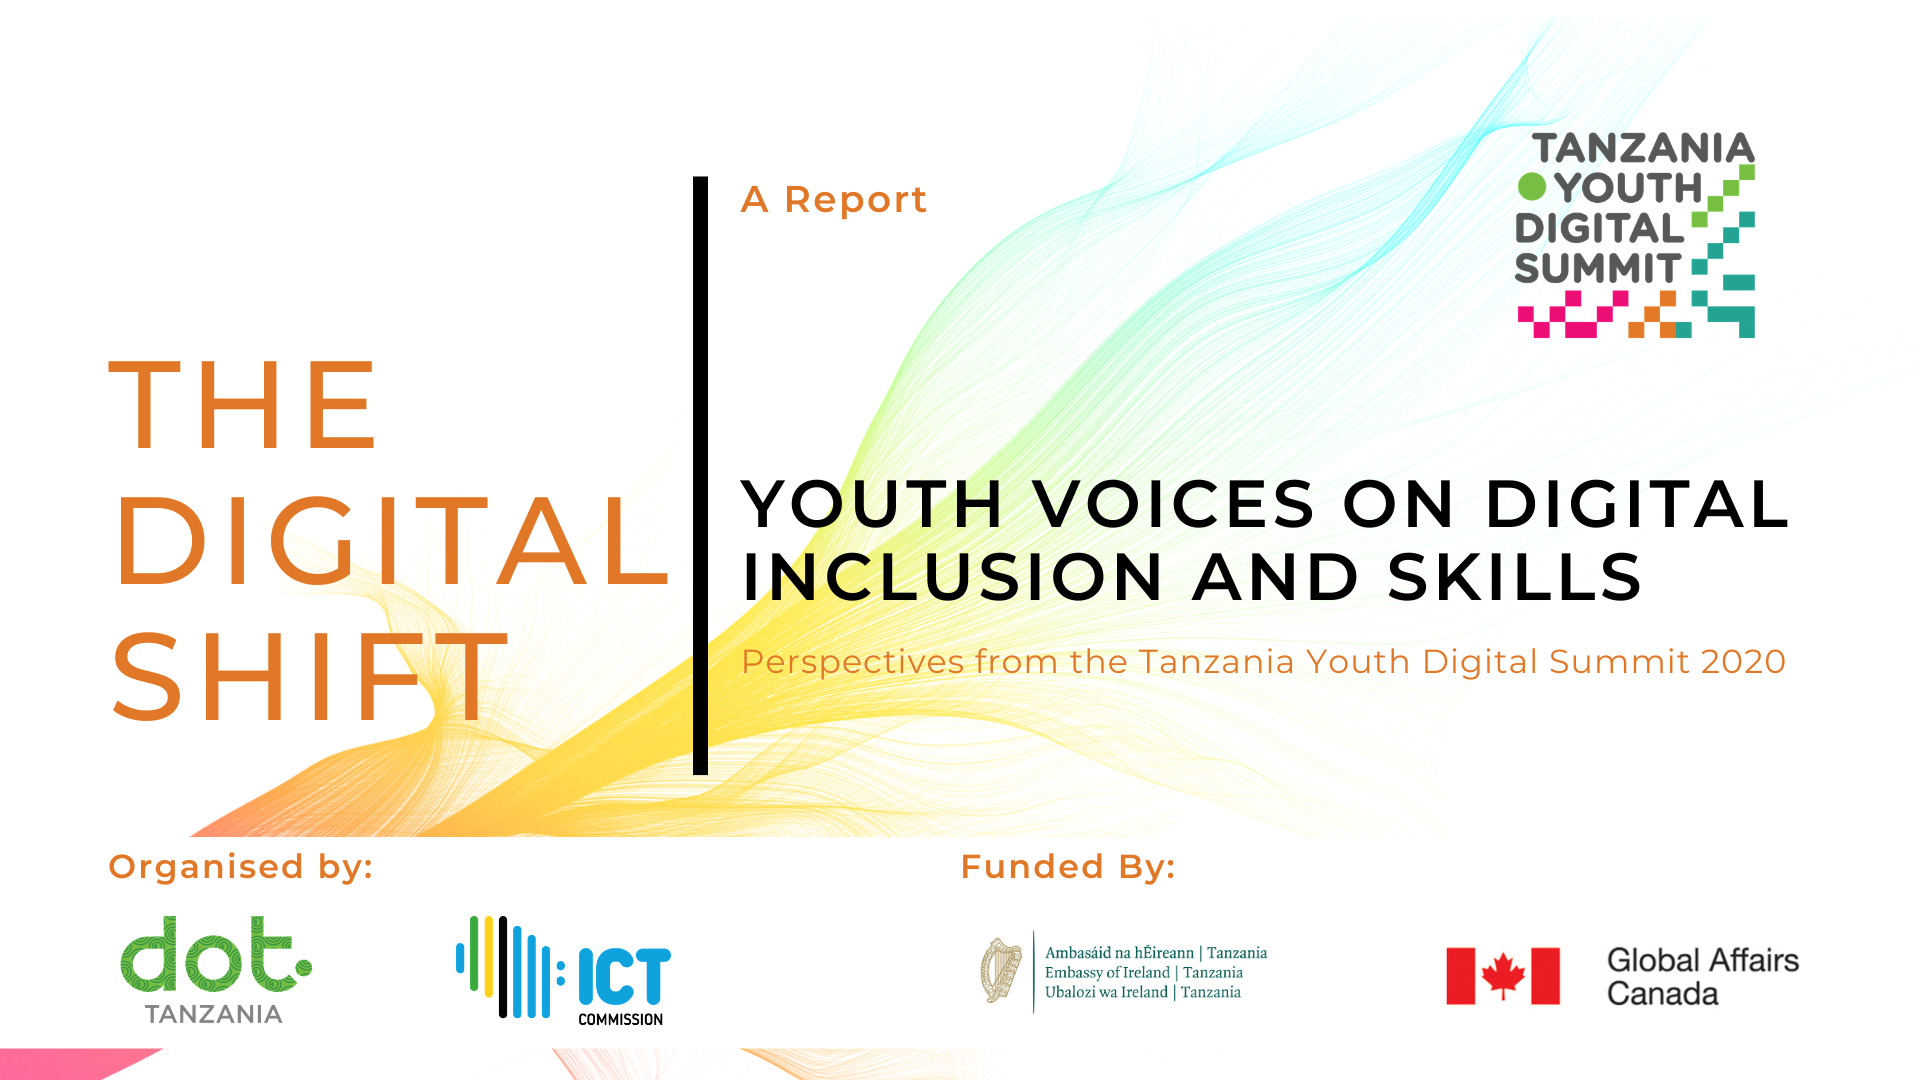 A report on insights gained from the 2020 Tanzania Youth Digital Summit (TYDS) 2020, hosted virtually by Digital Opportunity Trust (DOT) and the Information Communications Technology (ICT) Commission, Tanzania.